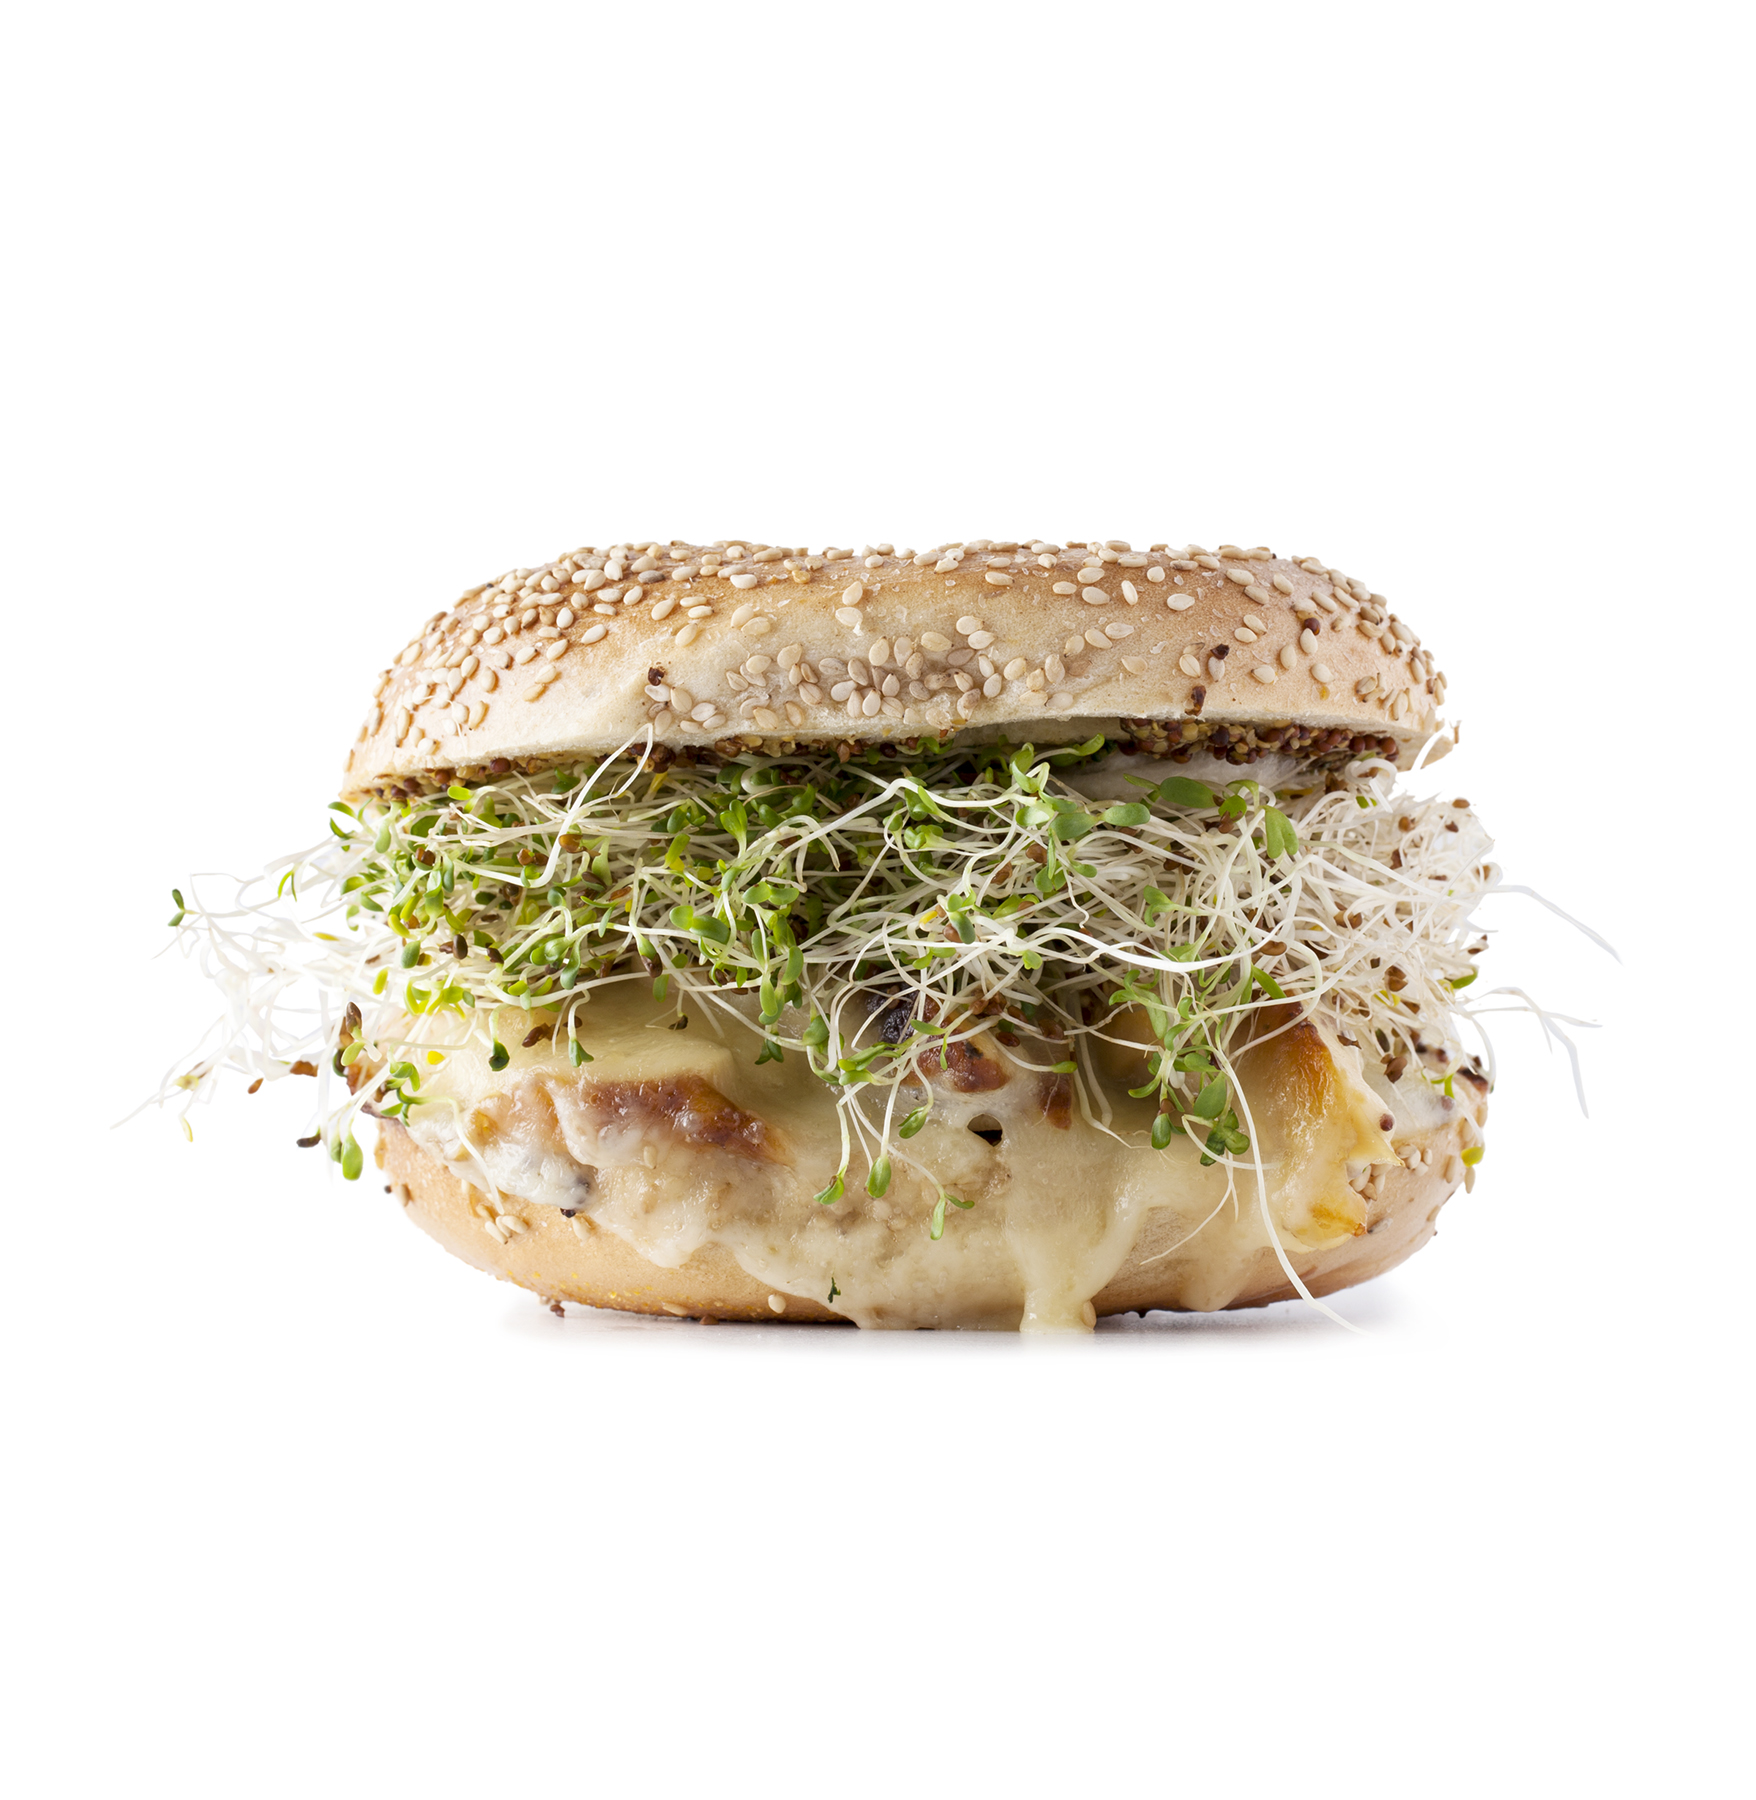 Chicken, Sprouts, and Provolone Sandwich